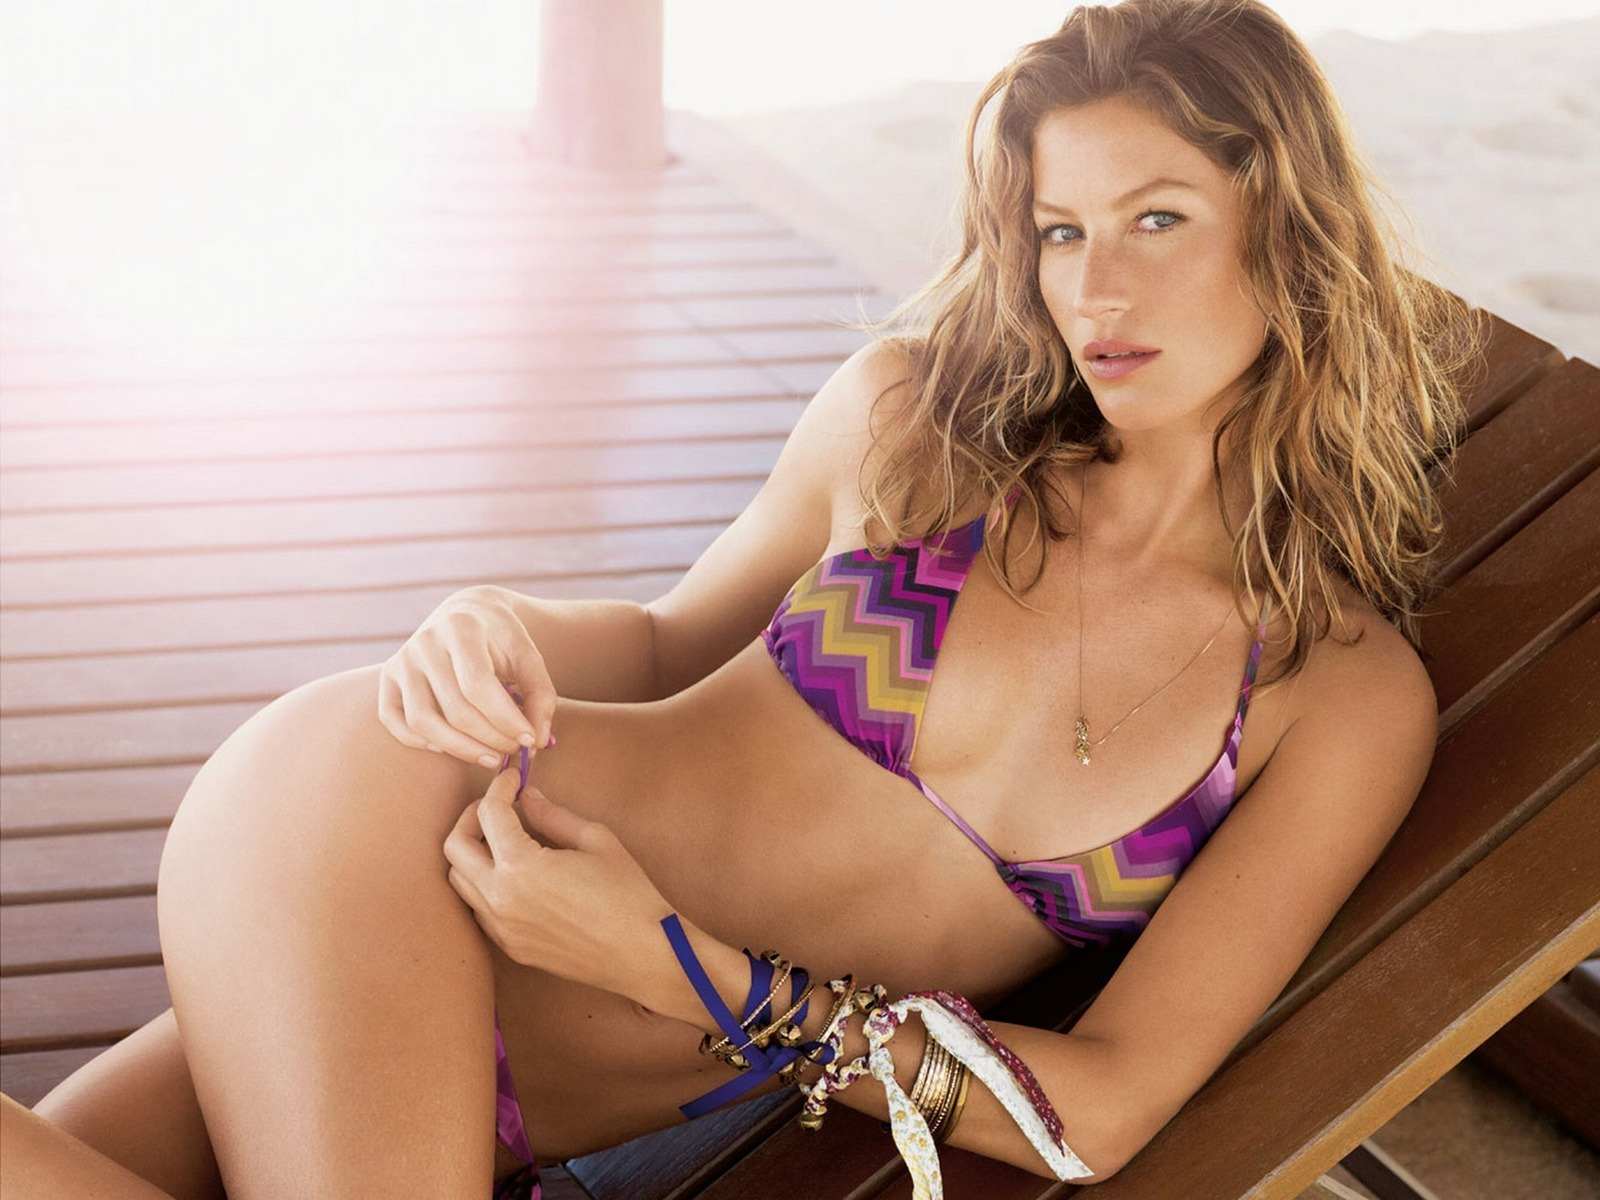 Gisele Bundchen Images Gisele Hd Wallpaper And Background